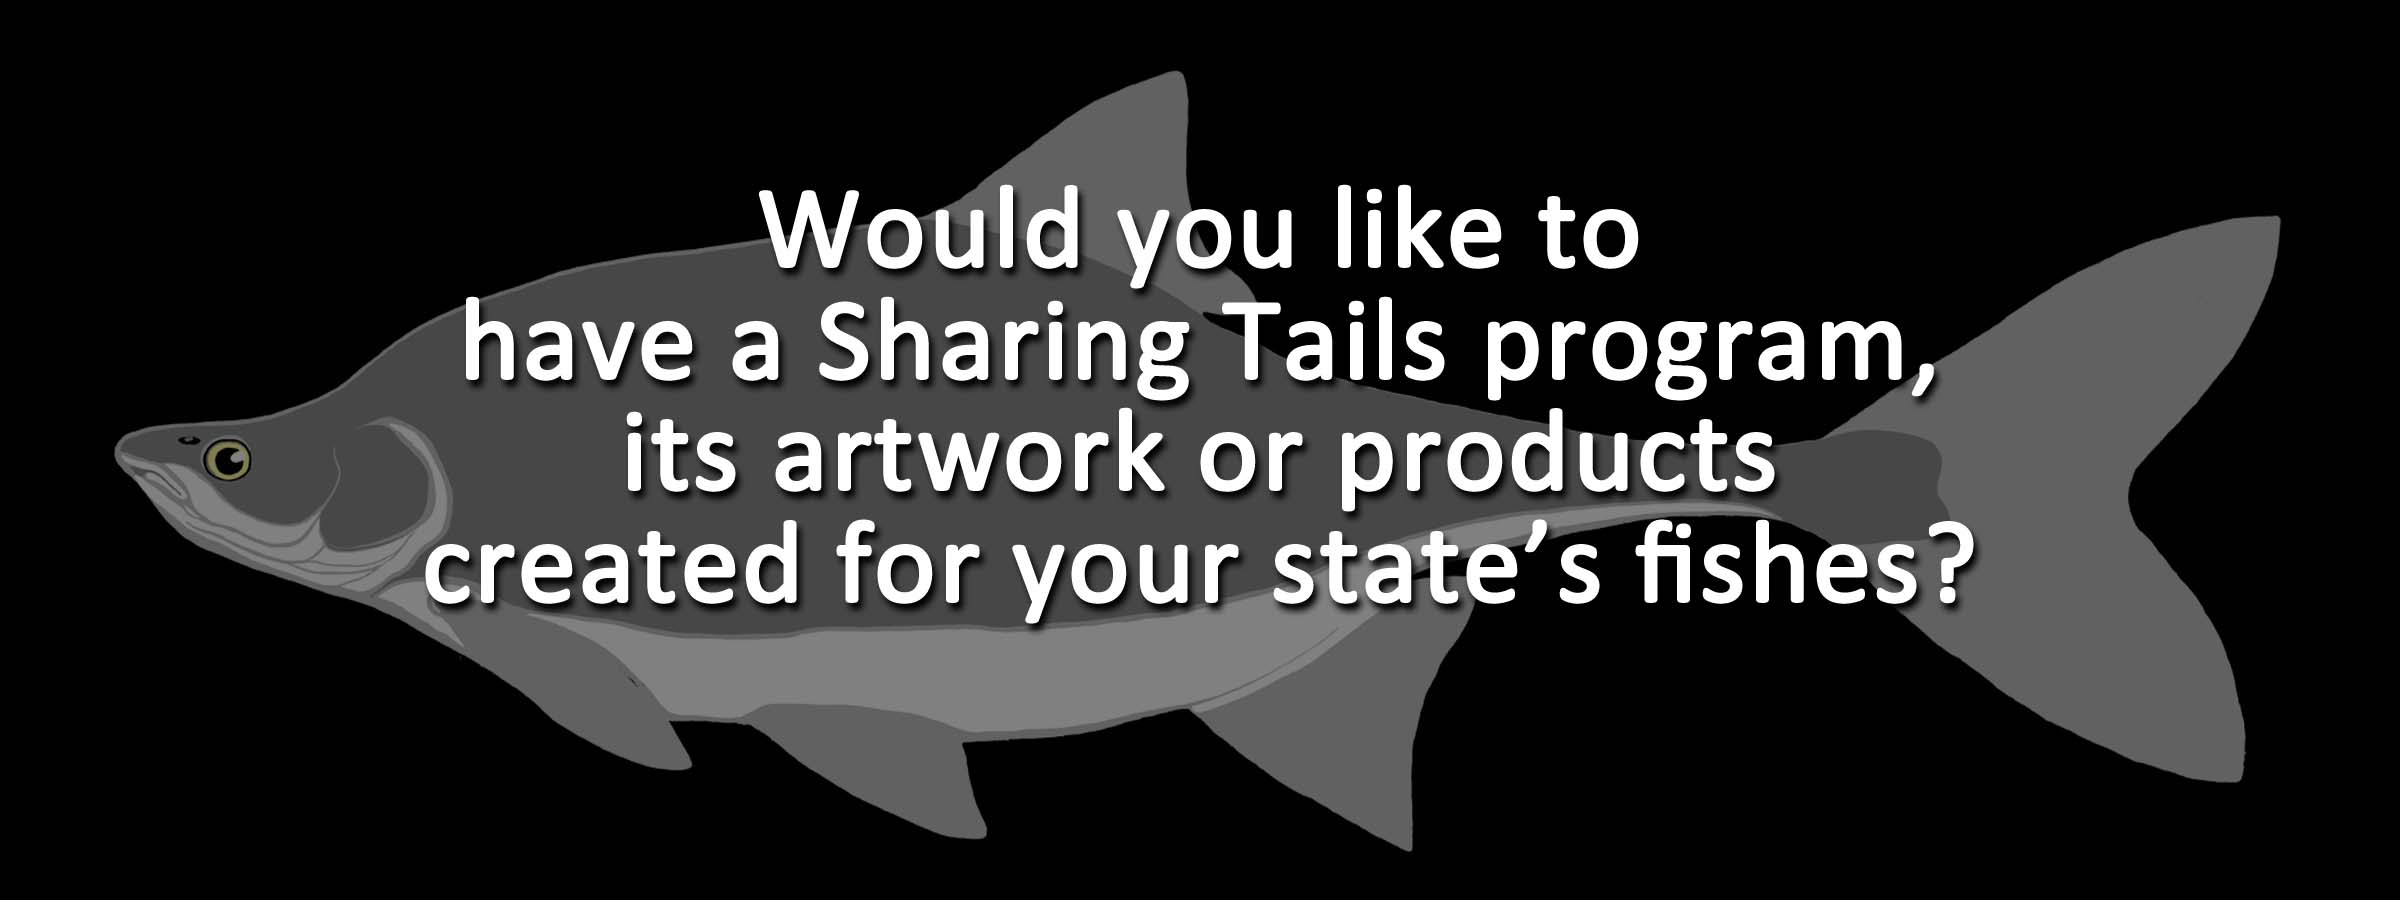 Sharing Tails ad